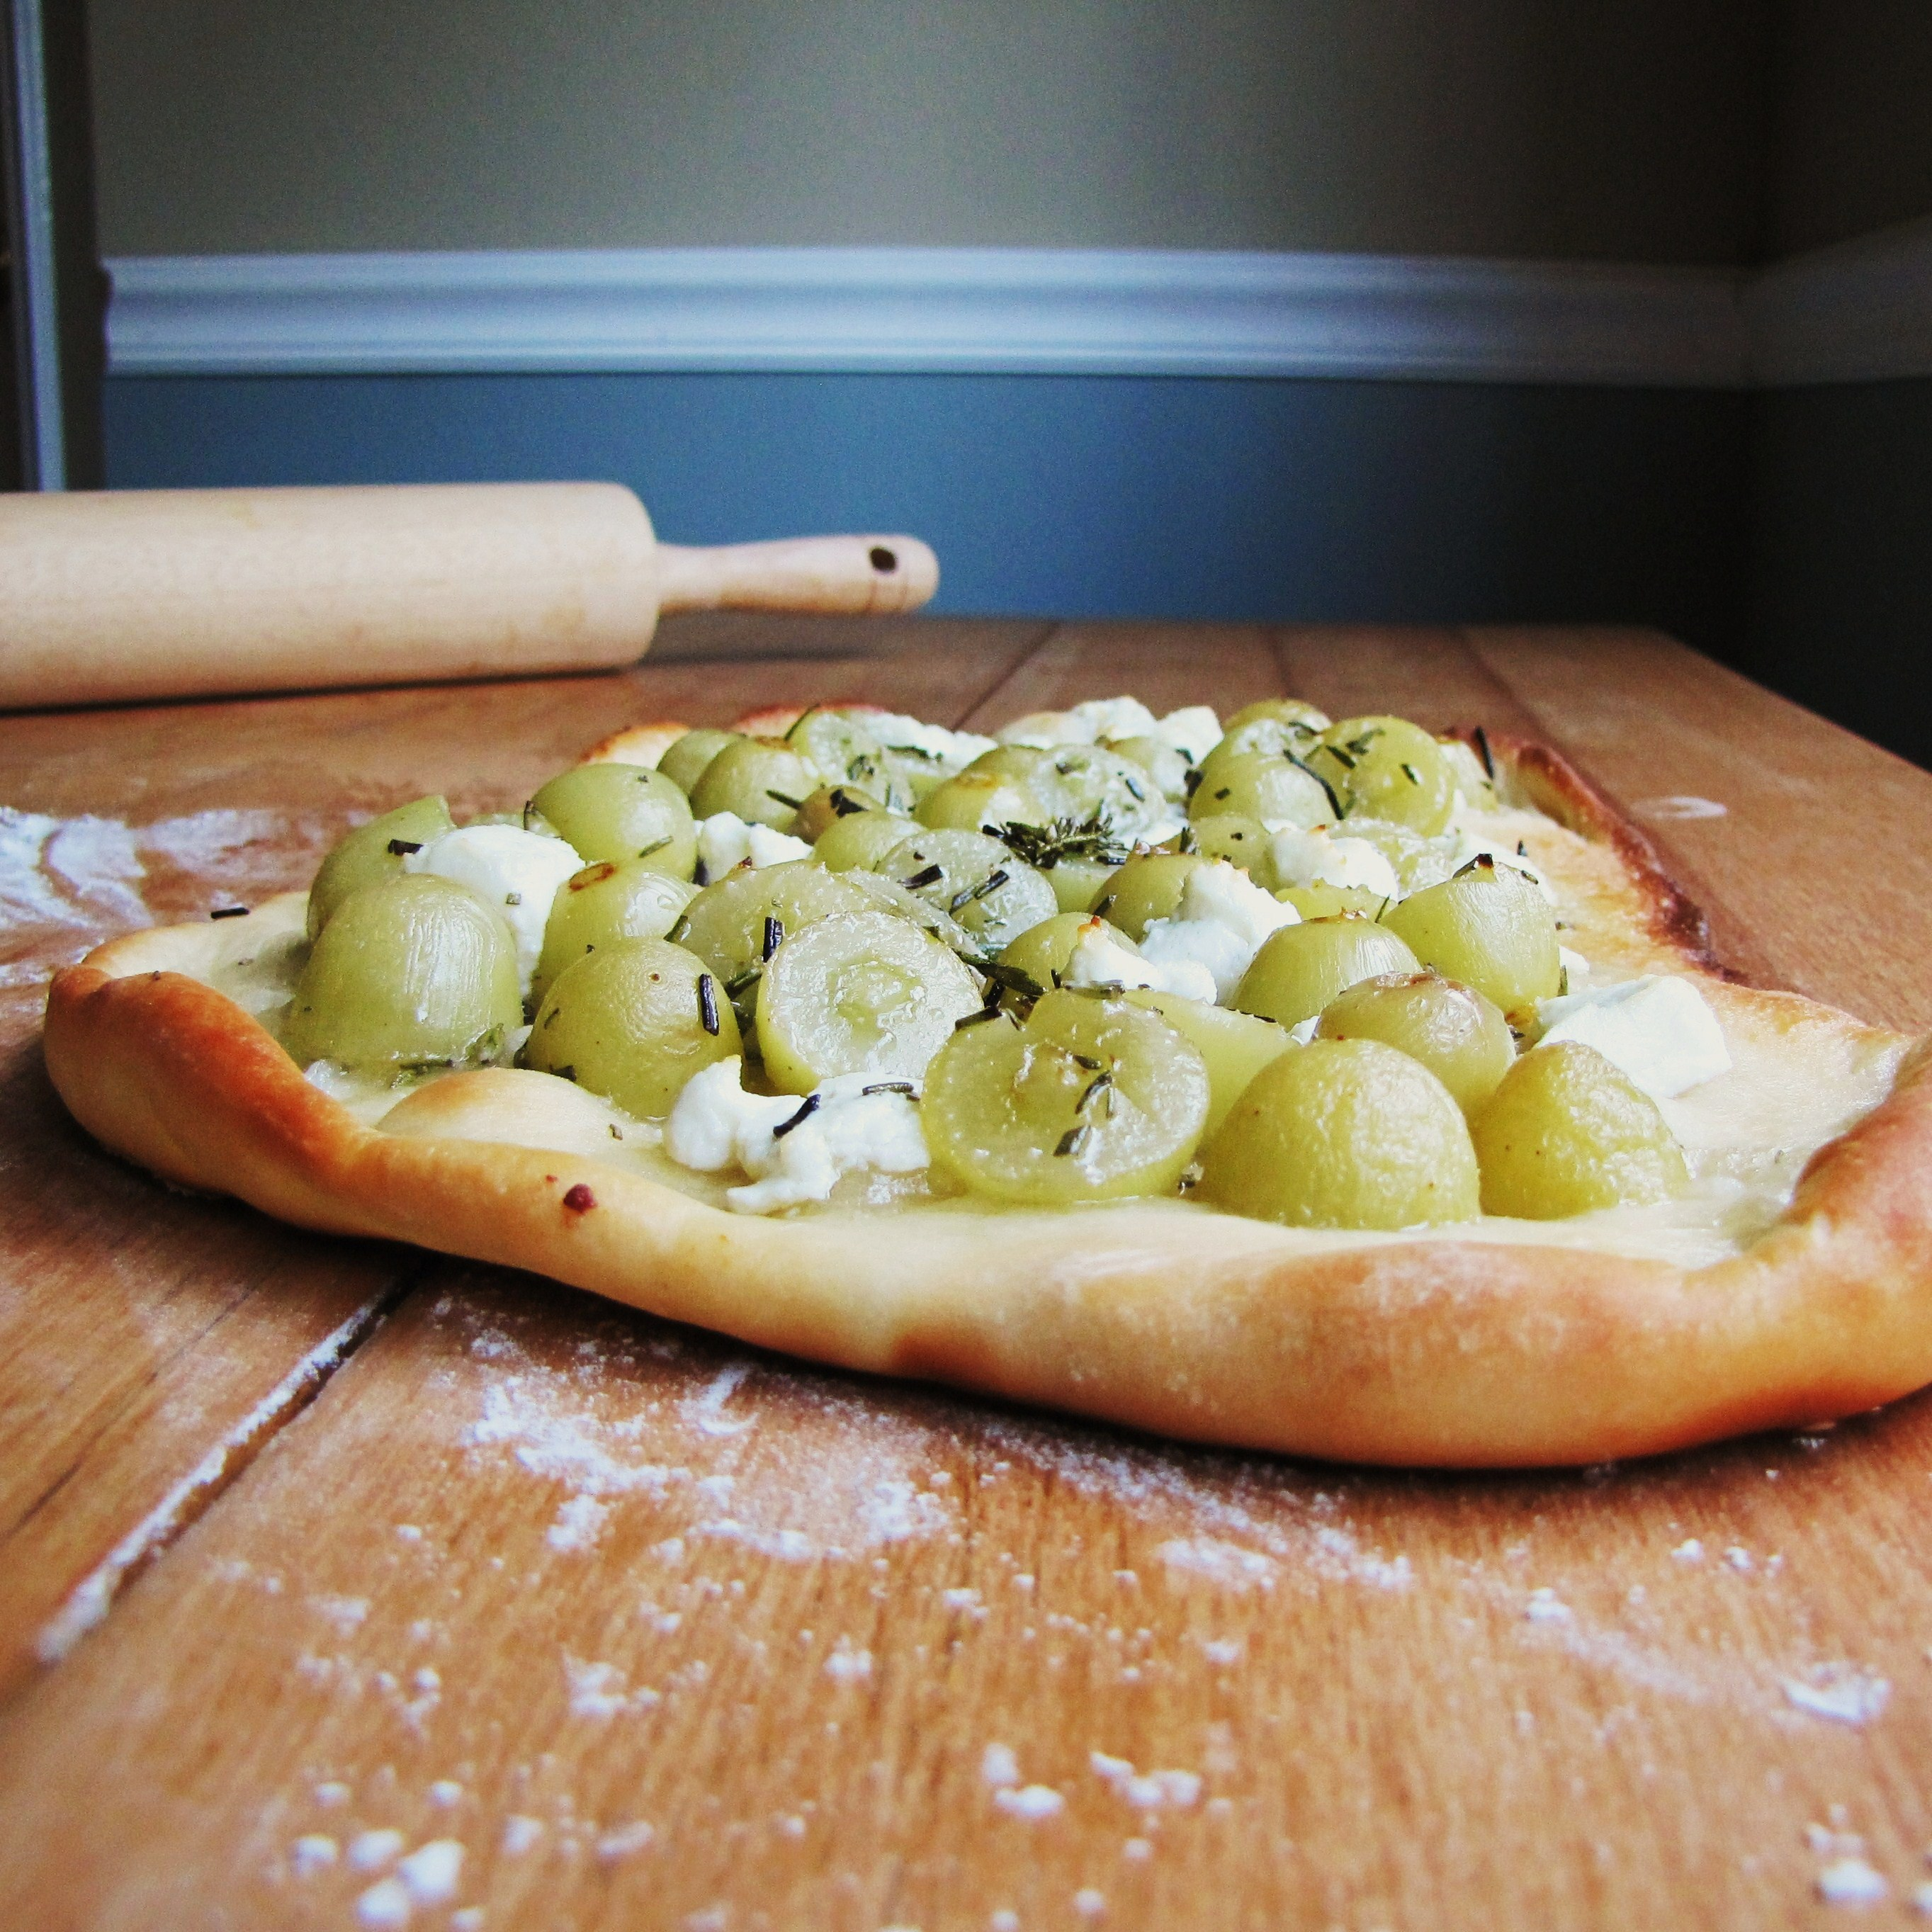 A Summer Pizza – Rosemary, Grapes, and Chevre